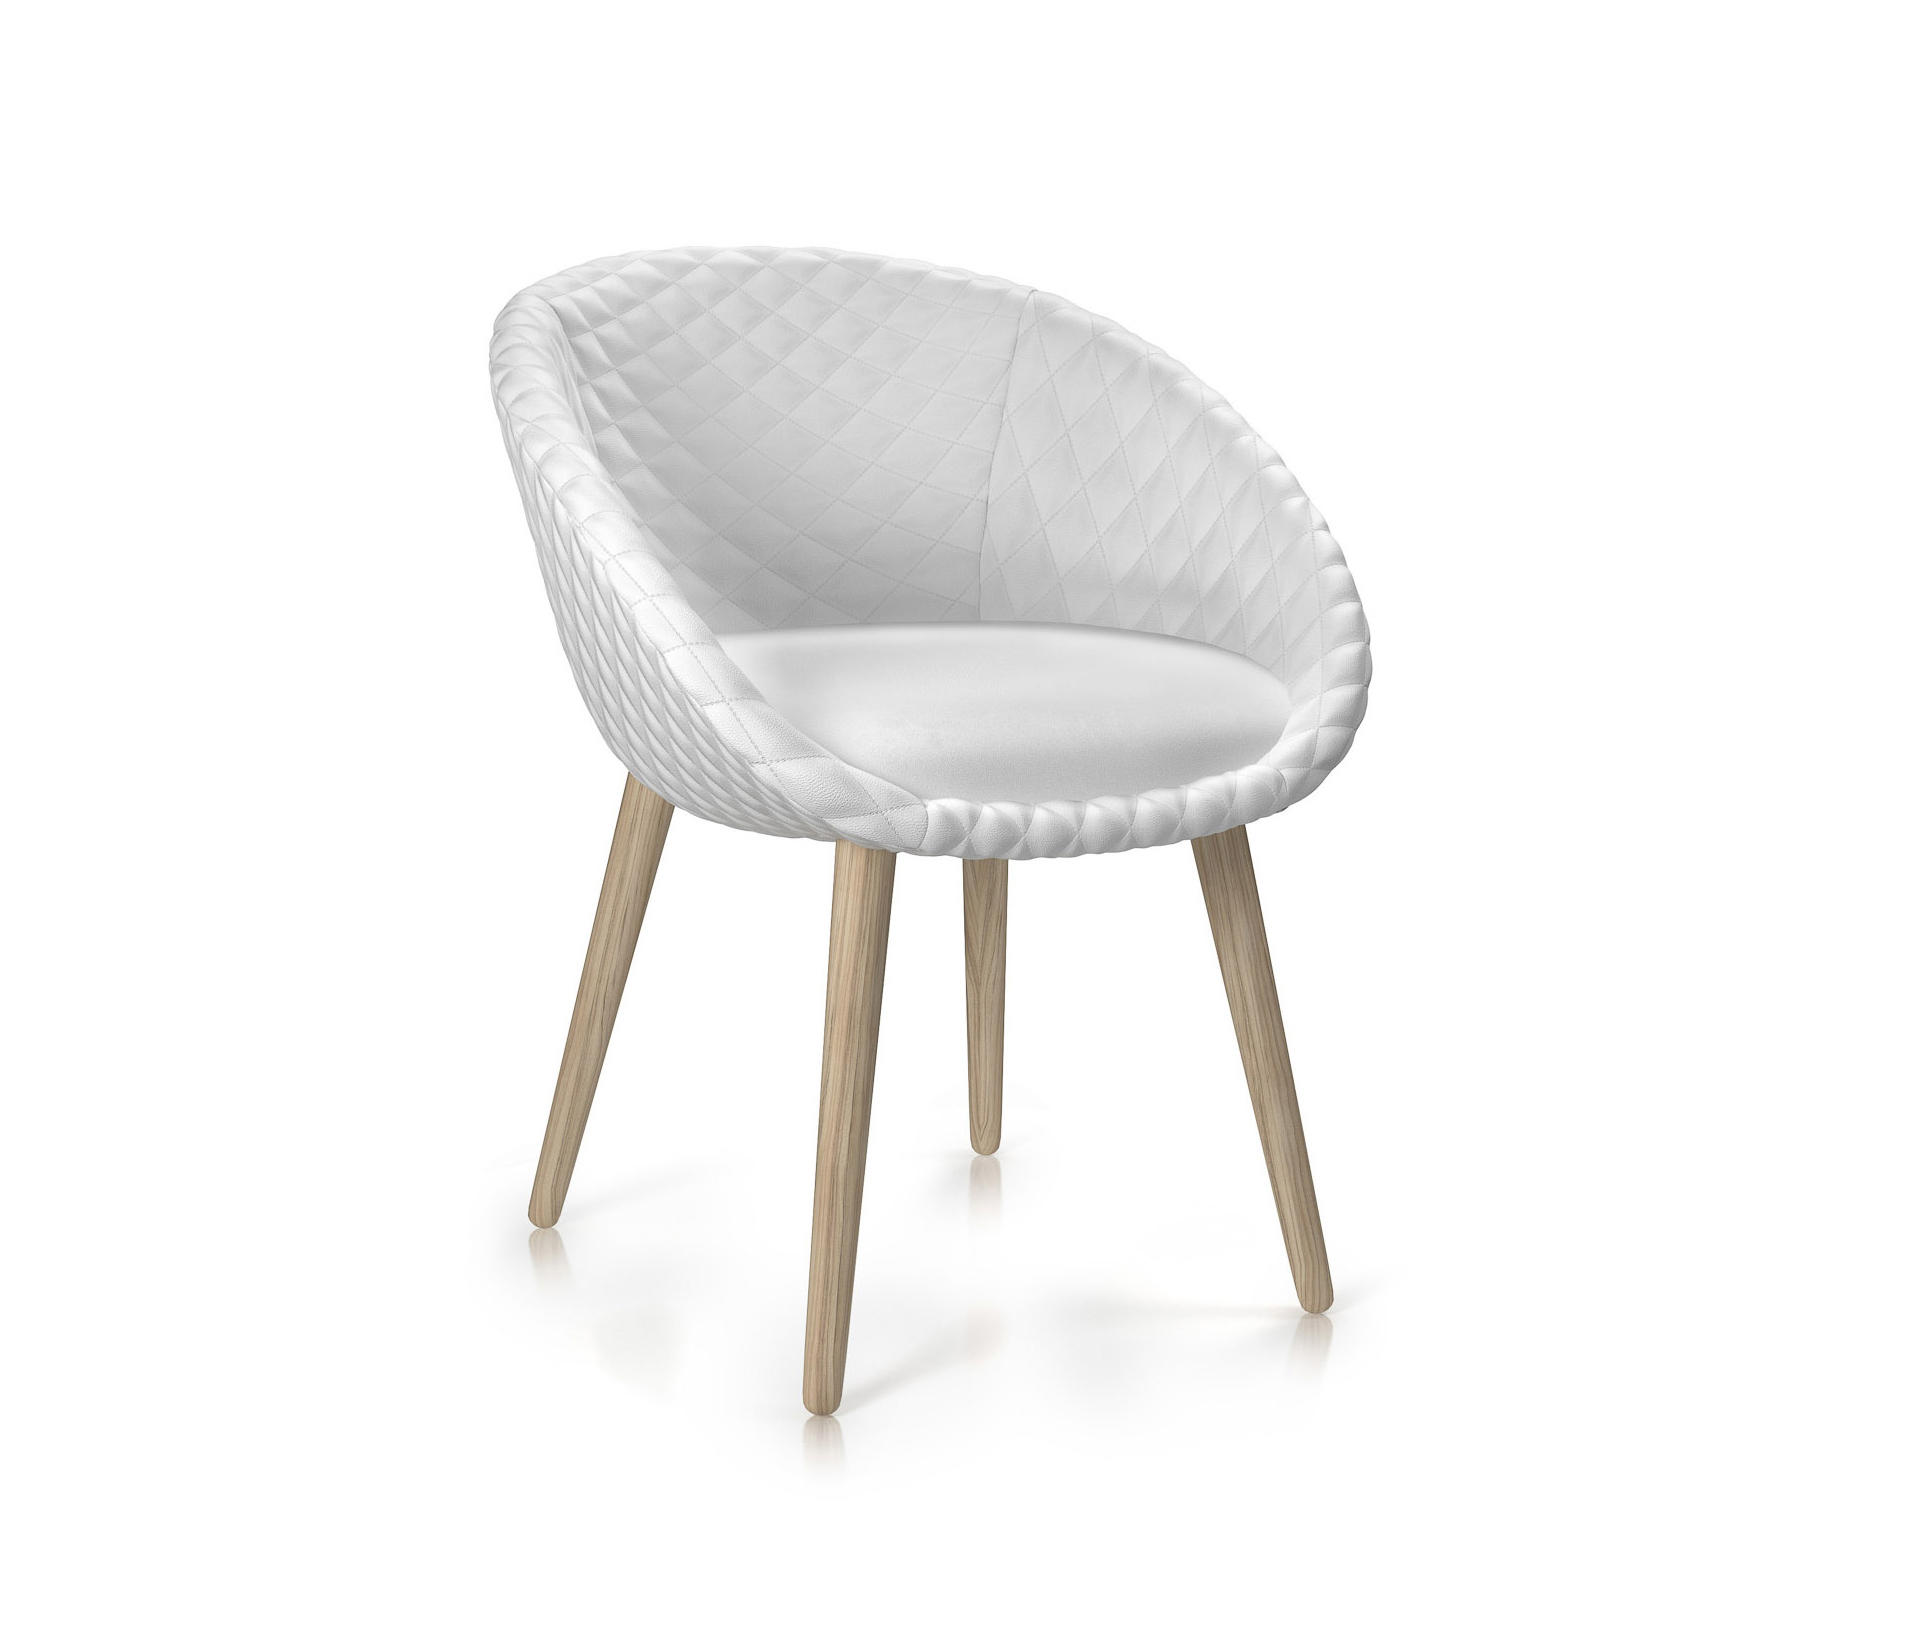 love chair  visitors chairs  side chairs from moooi  architonic - love chair by moooi  visitors chairs  side chairs